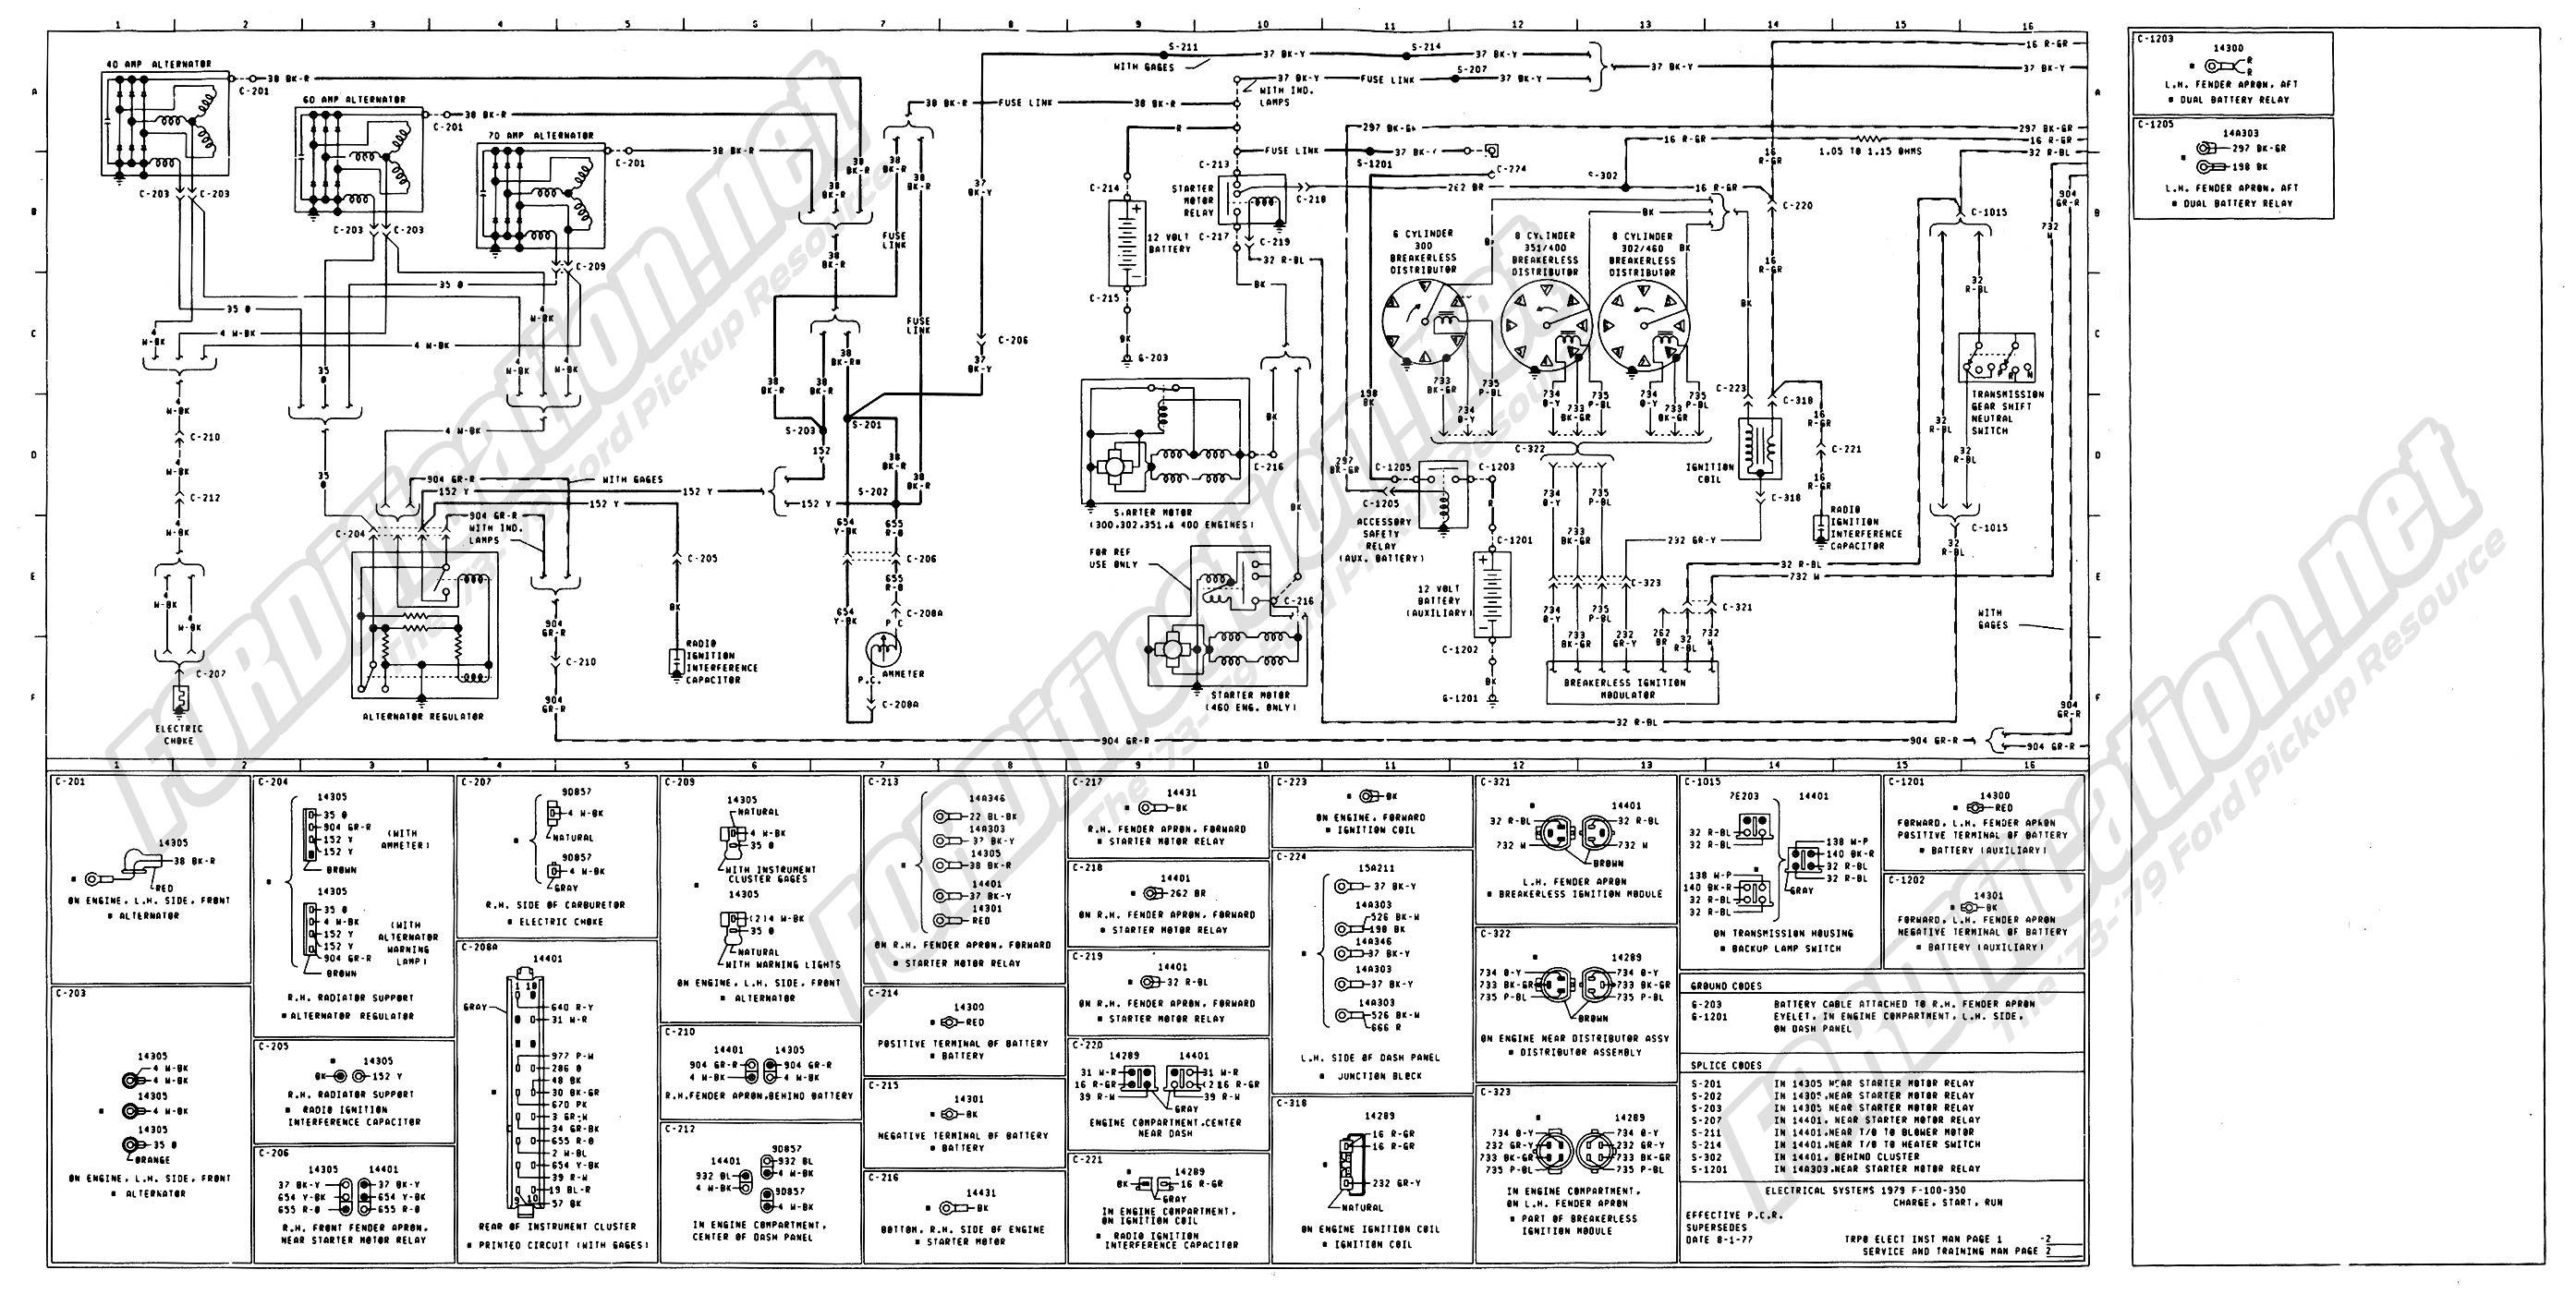 1996 ford e 150 ignition wiring detailed schematics diagram rh jppastryarts  com 87 Ford F-